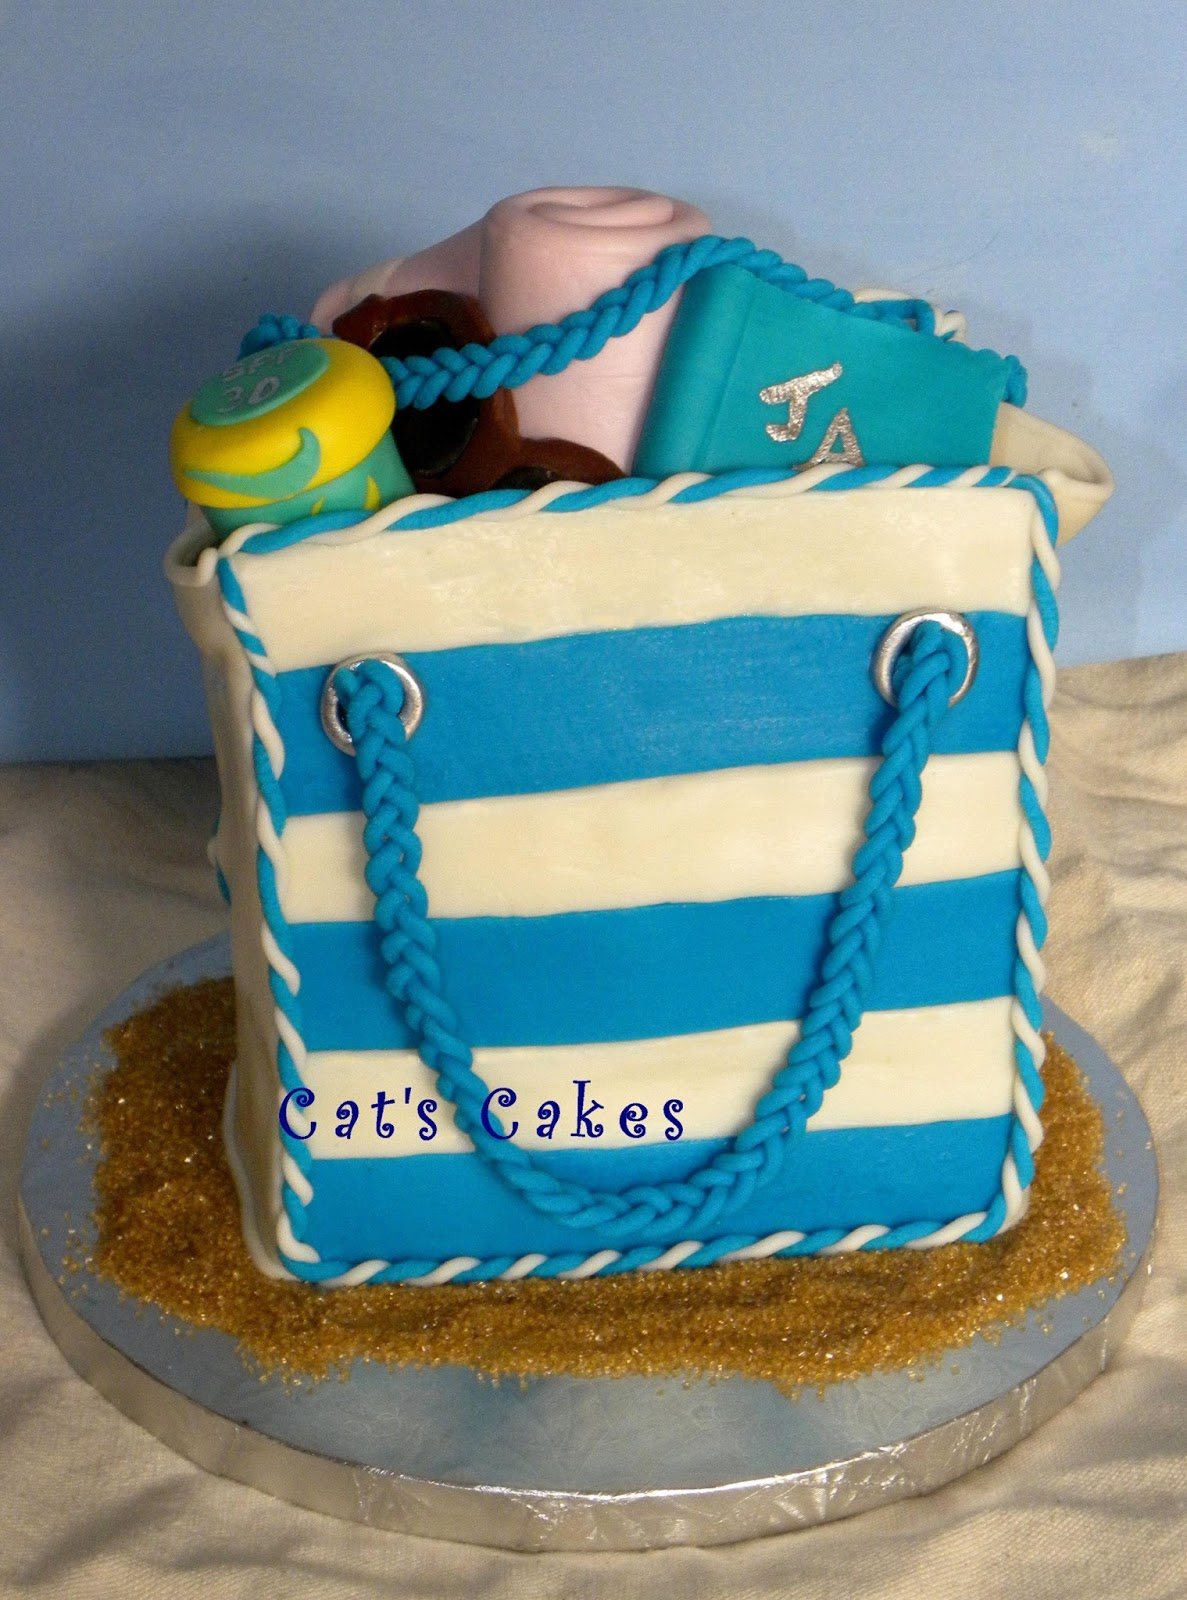 The Cherry On Top Events Party Blog: Beach Bag Birthday Party